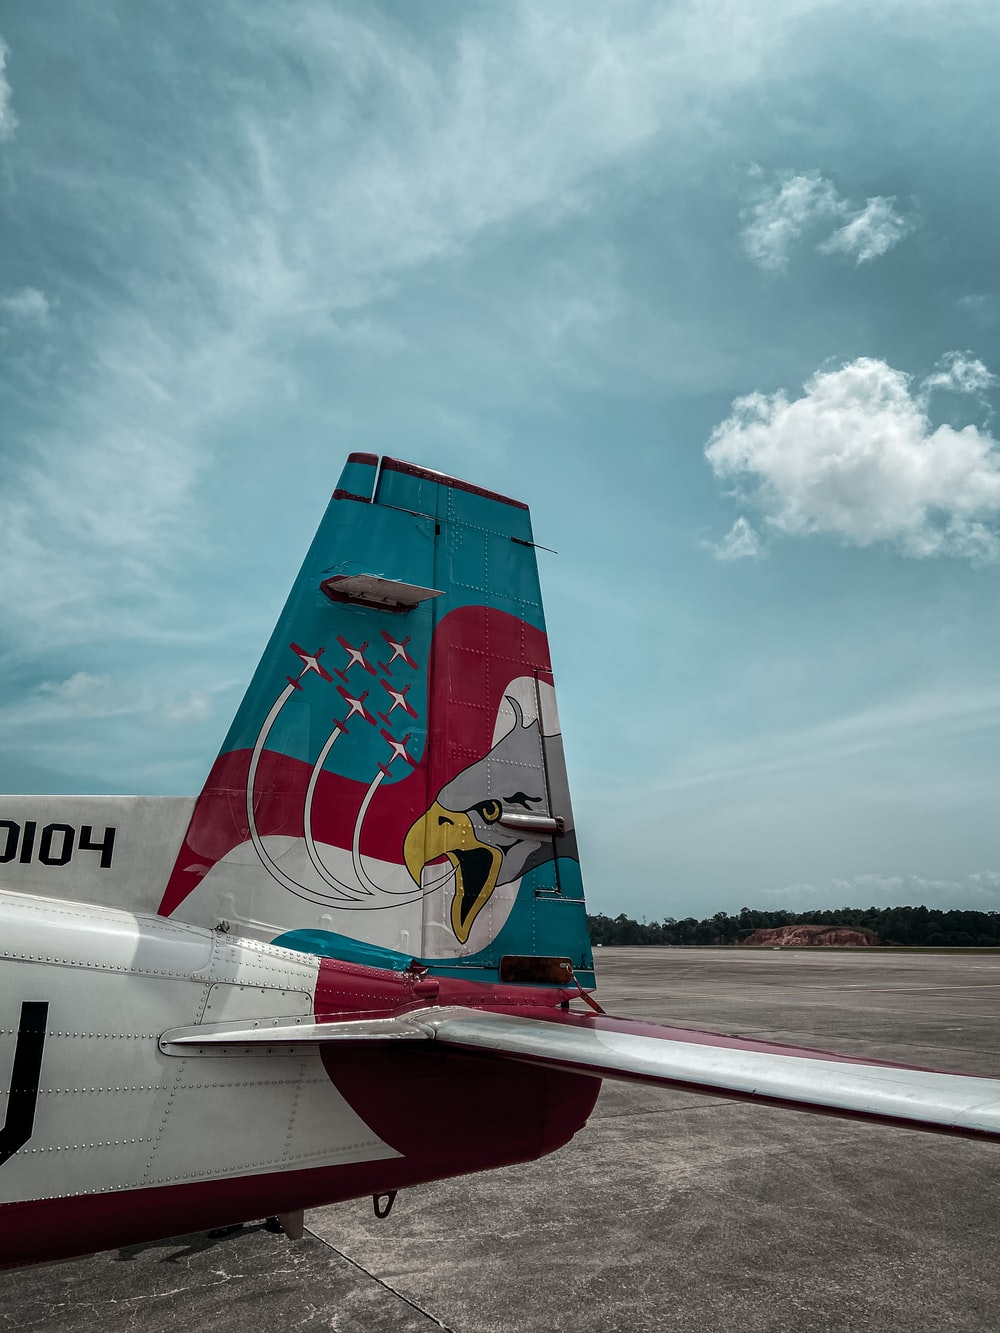 red and white airplane under white clouds and blue sky during daytime